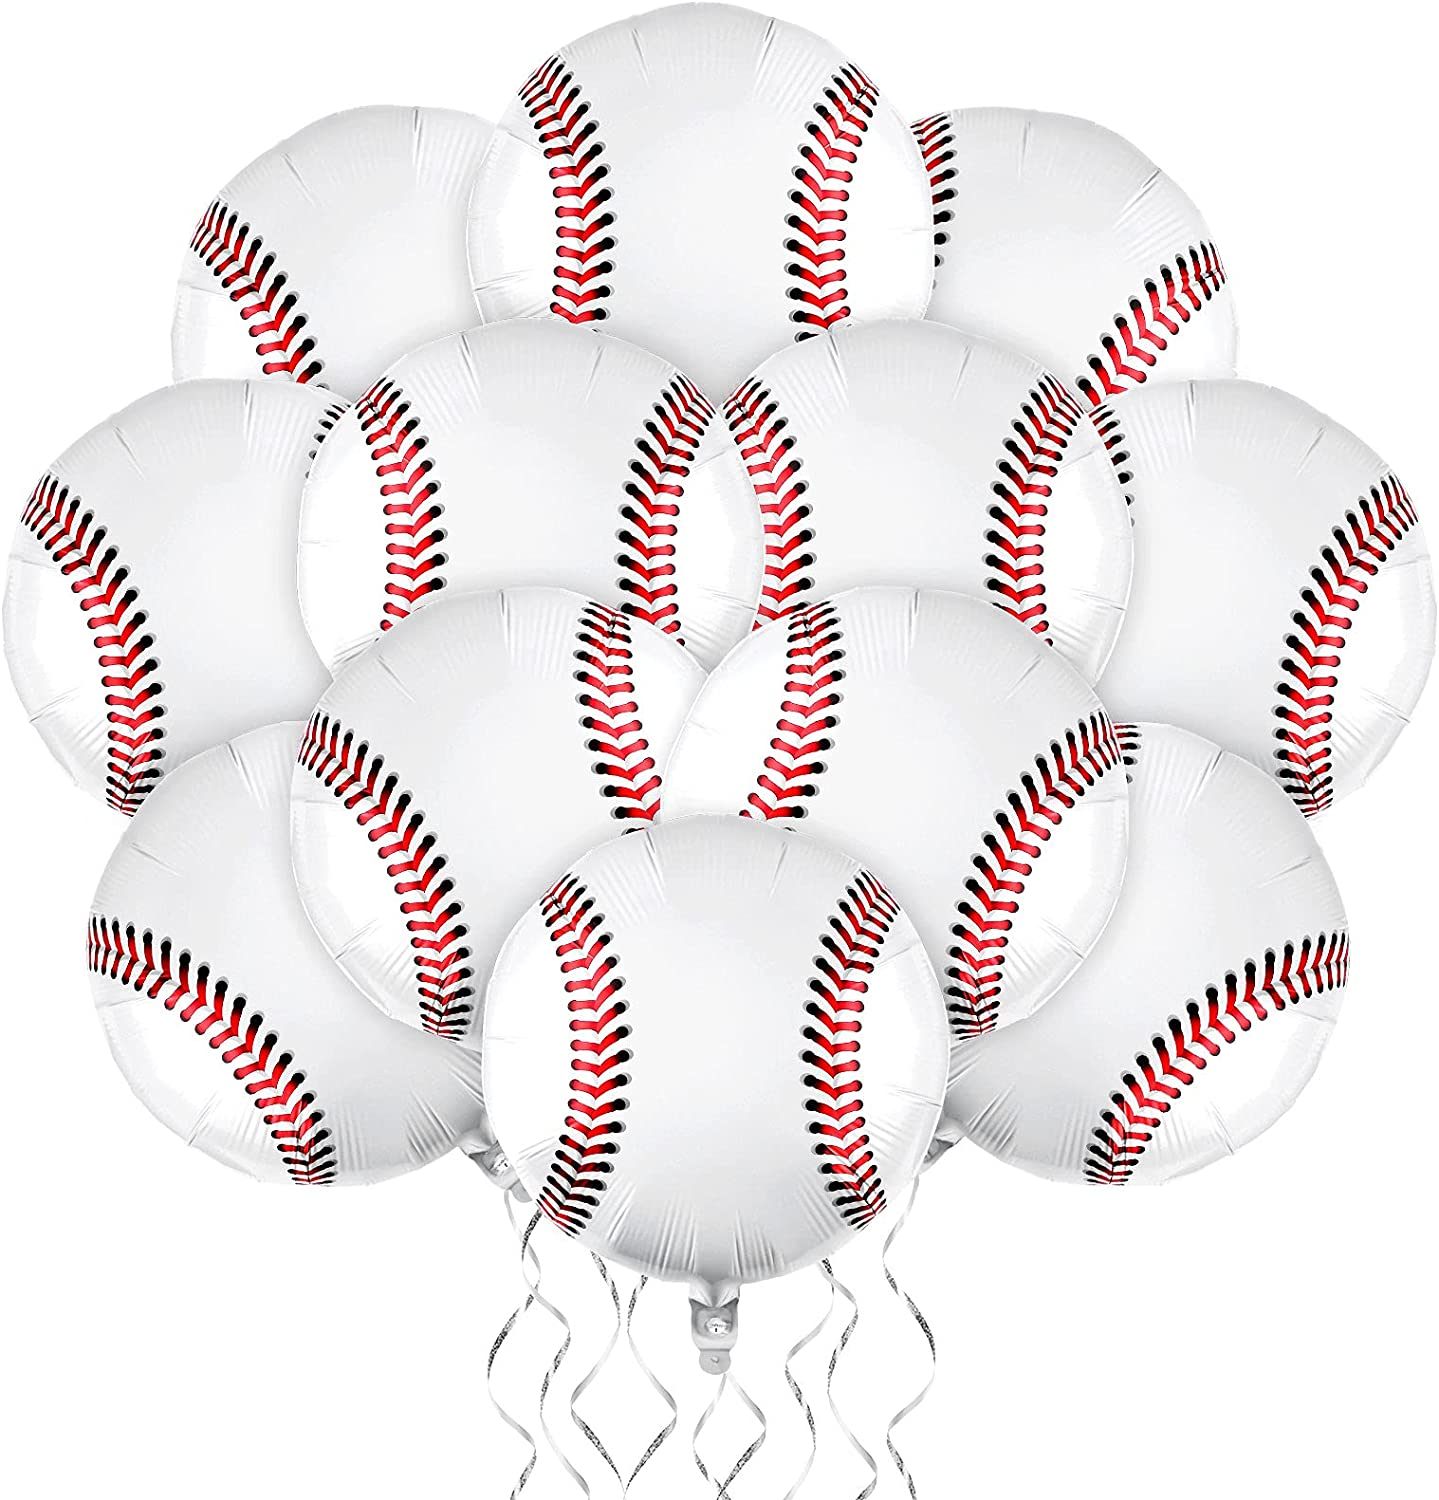 durony 12 Pieces 18 inches Baseball Balloons Baseball Themed Party Decorations Foil Mylar Baseball Balloons For Birthday Party Supplies